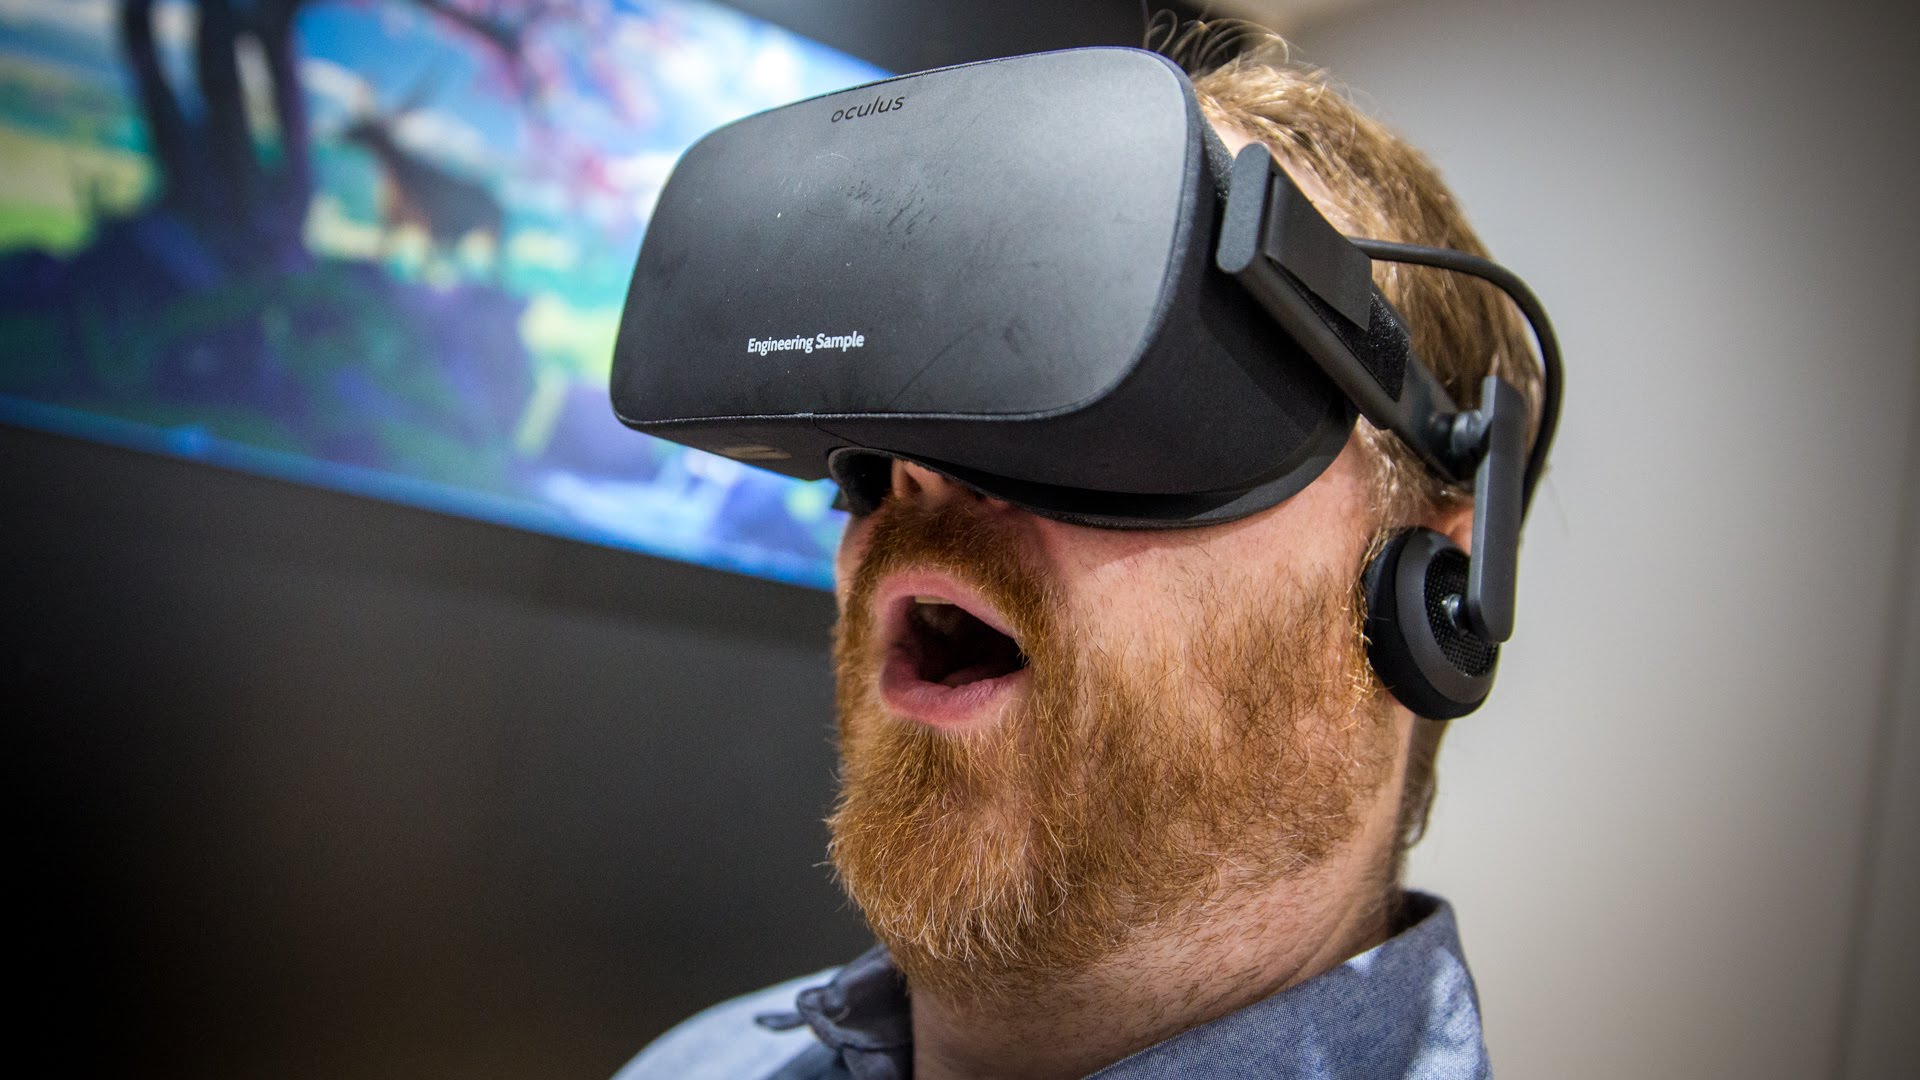 maxresdefault 2 6 Oculus Rift Update Backfires, Makes Device Pirate Friendly